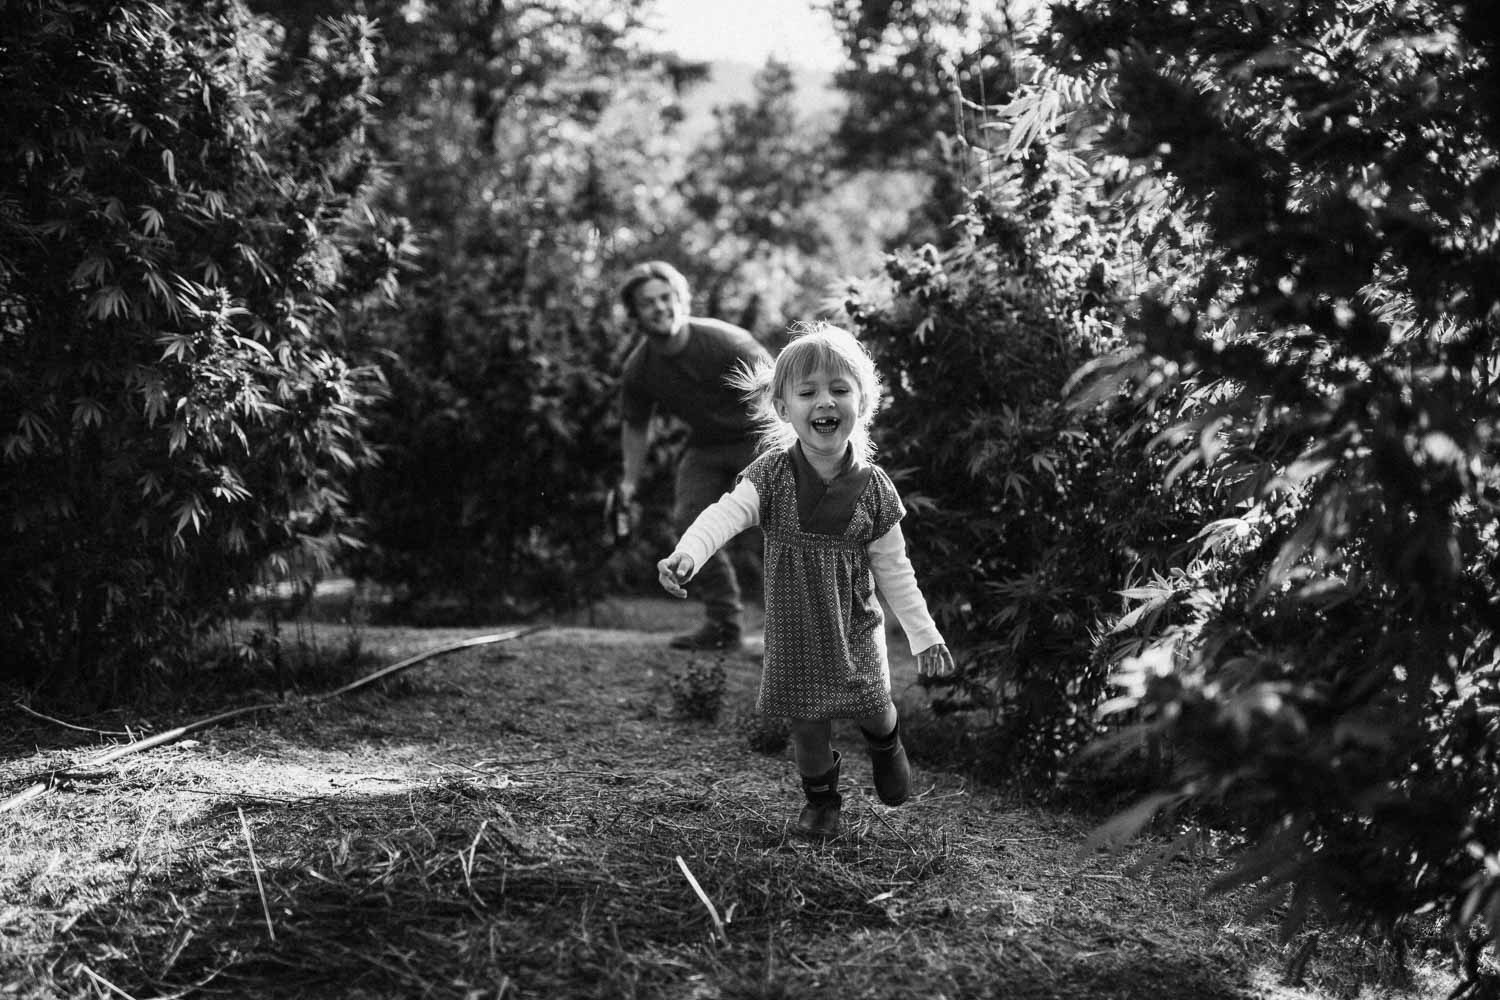 candid-black-and-white-photo-of-little-girl-running-through-weed-farm-in-sanfrancisco-cali